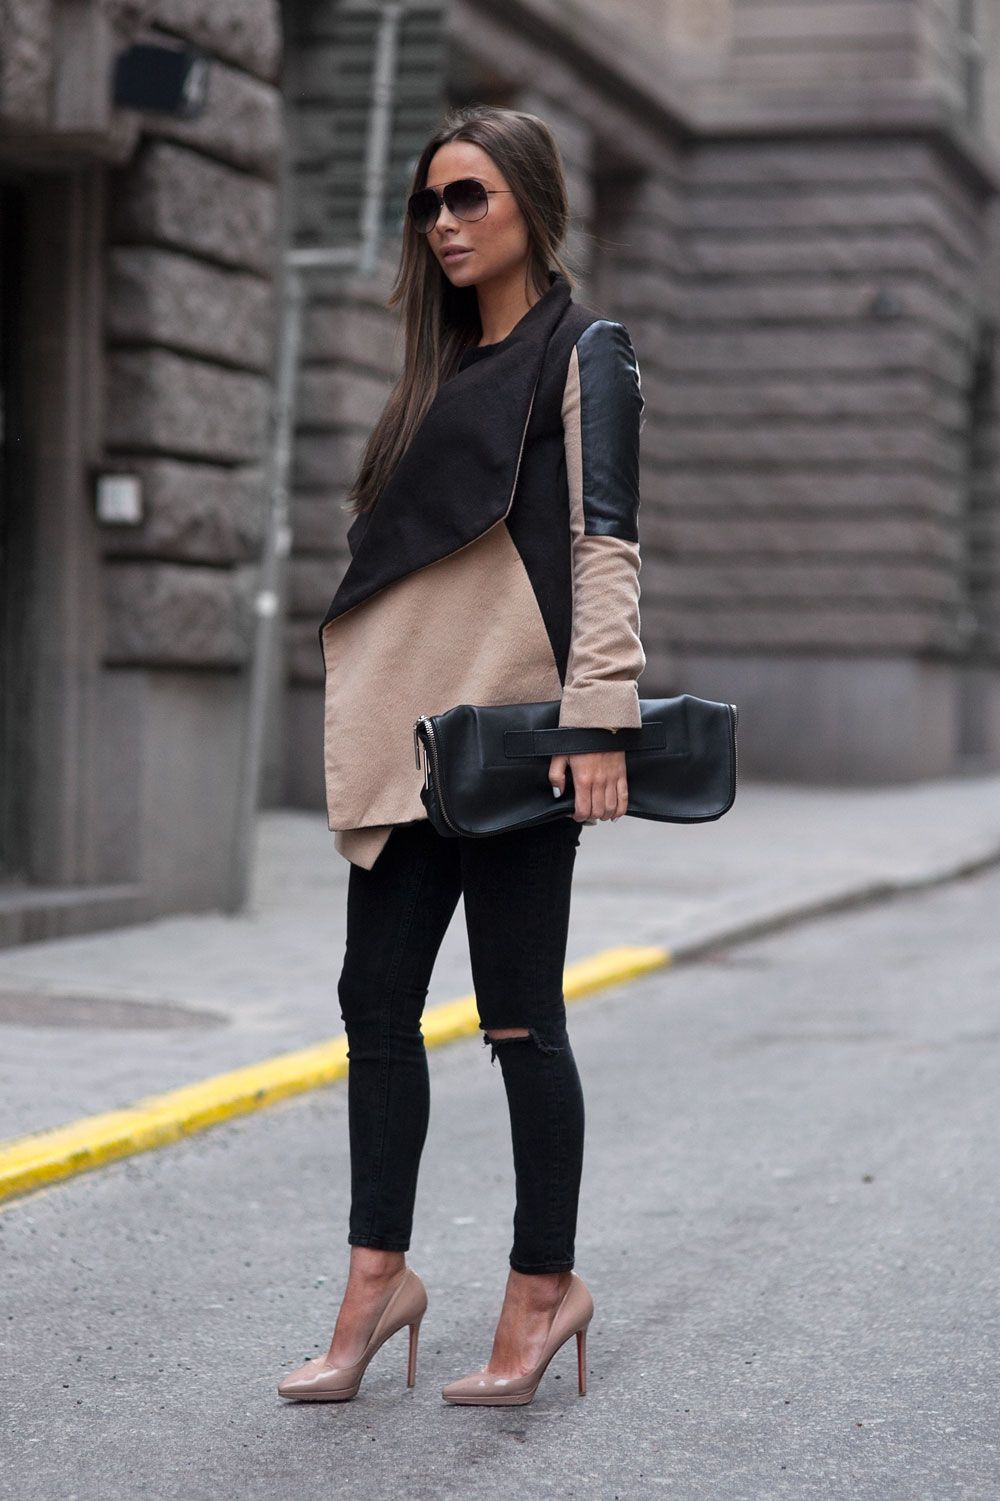 0f4c579af05f1 Johanna Olsson is wearing a camel and black jacket from River Island, nude  shoes from Christian Loboutin, black jeans from Asos and the bag is from  3.1 ...